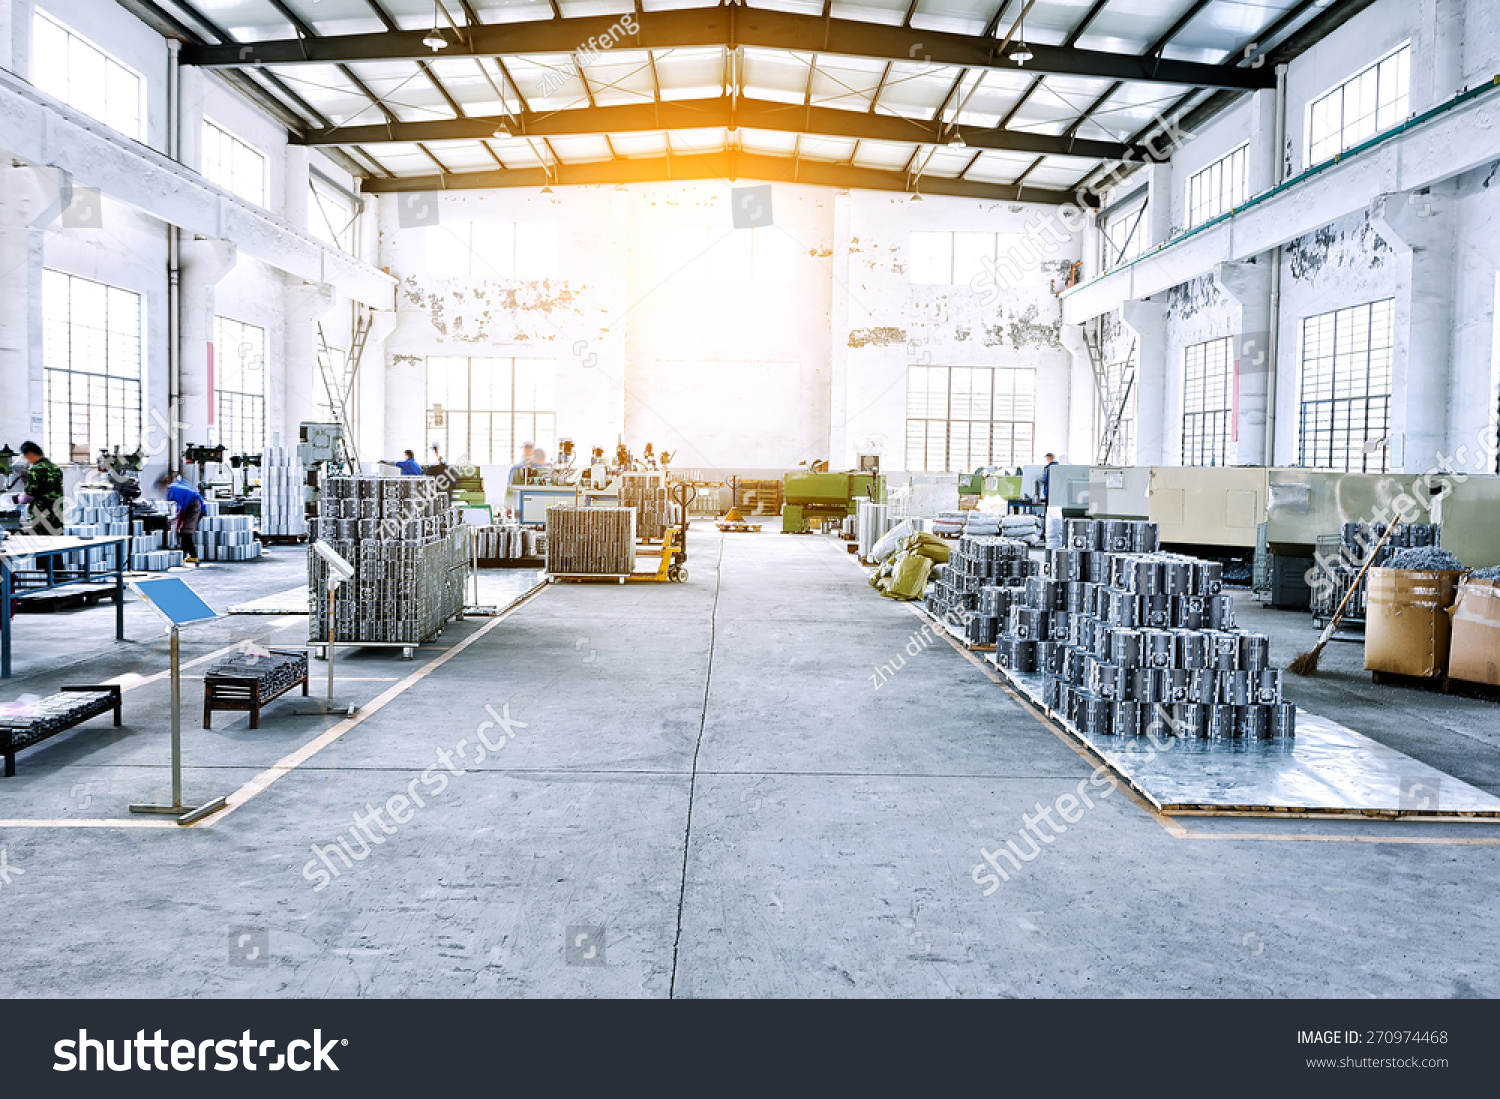 Factory Workshop Interior Machines Stock Photo 270974468